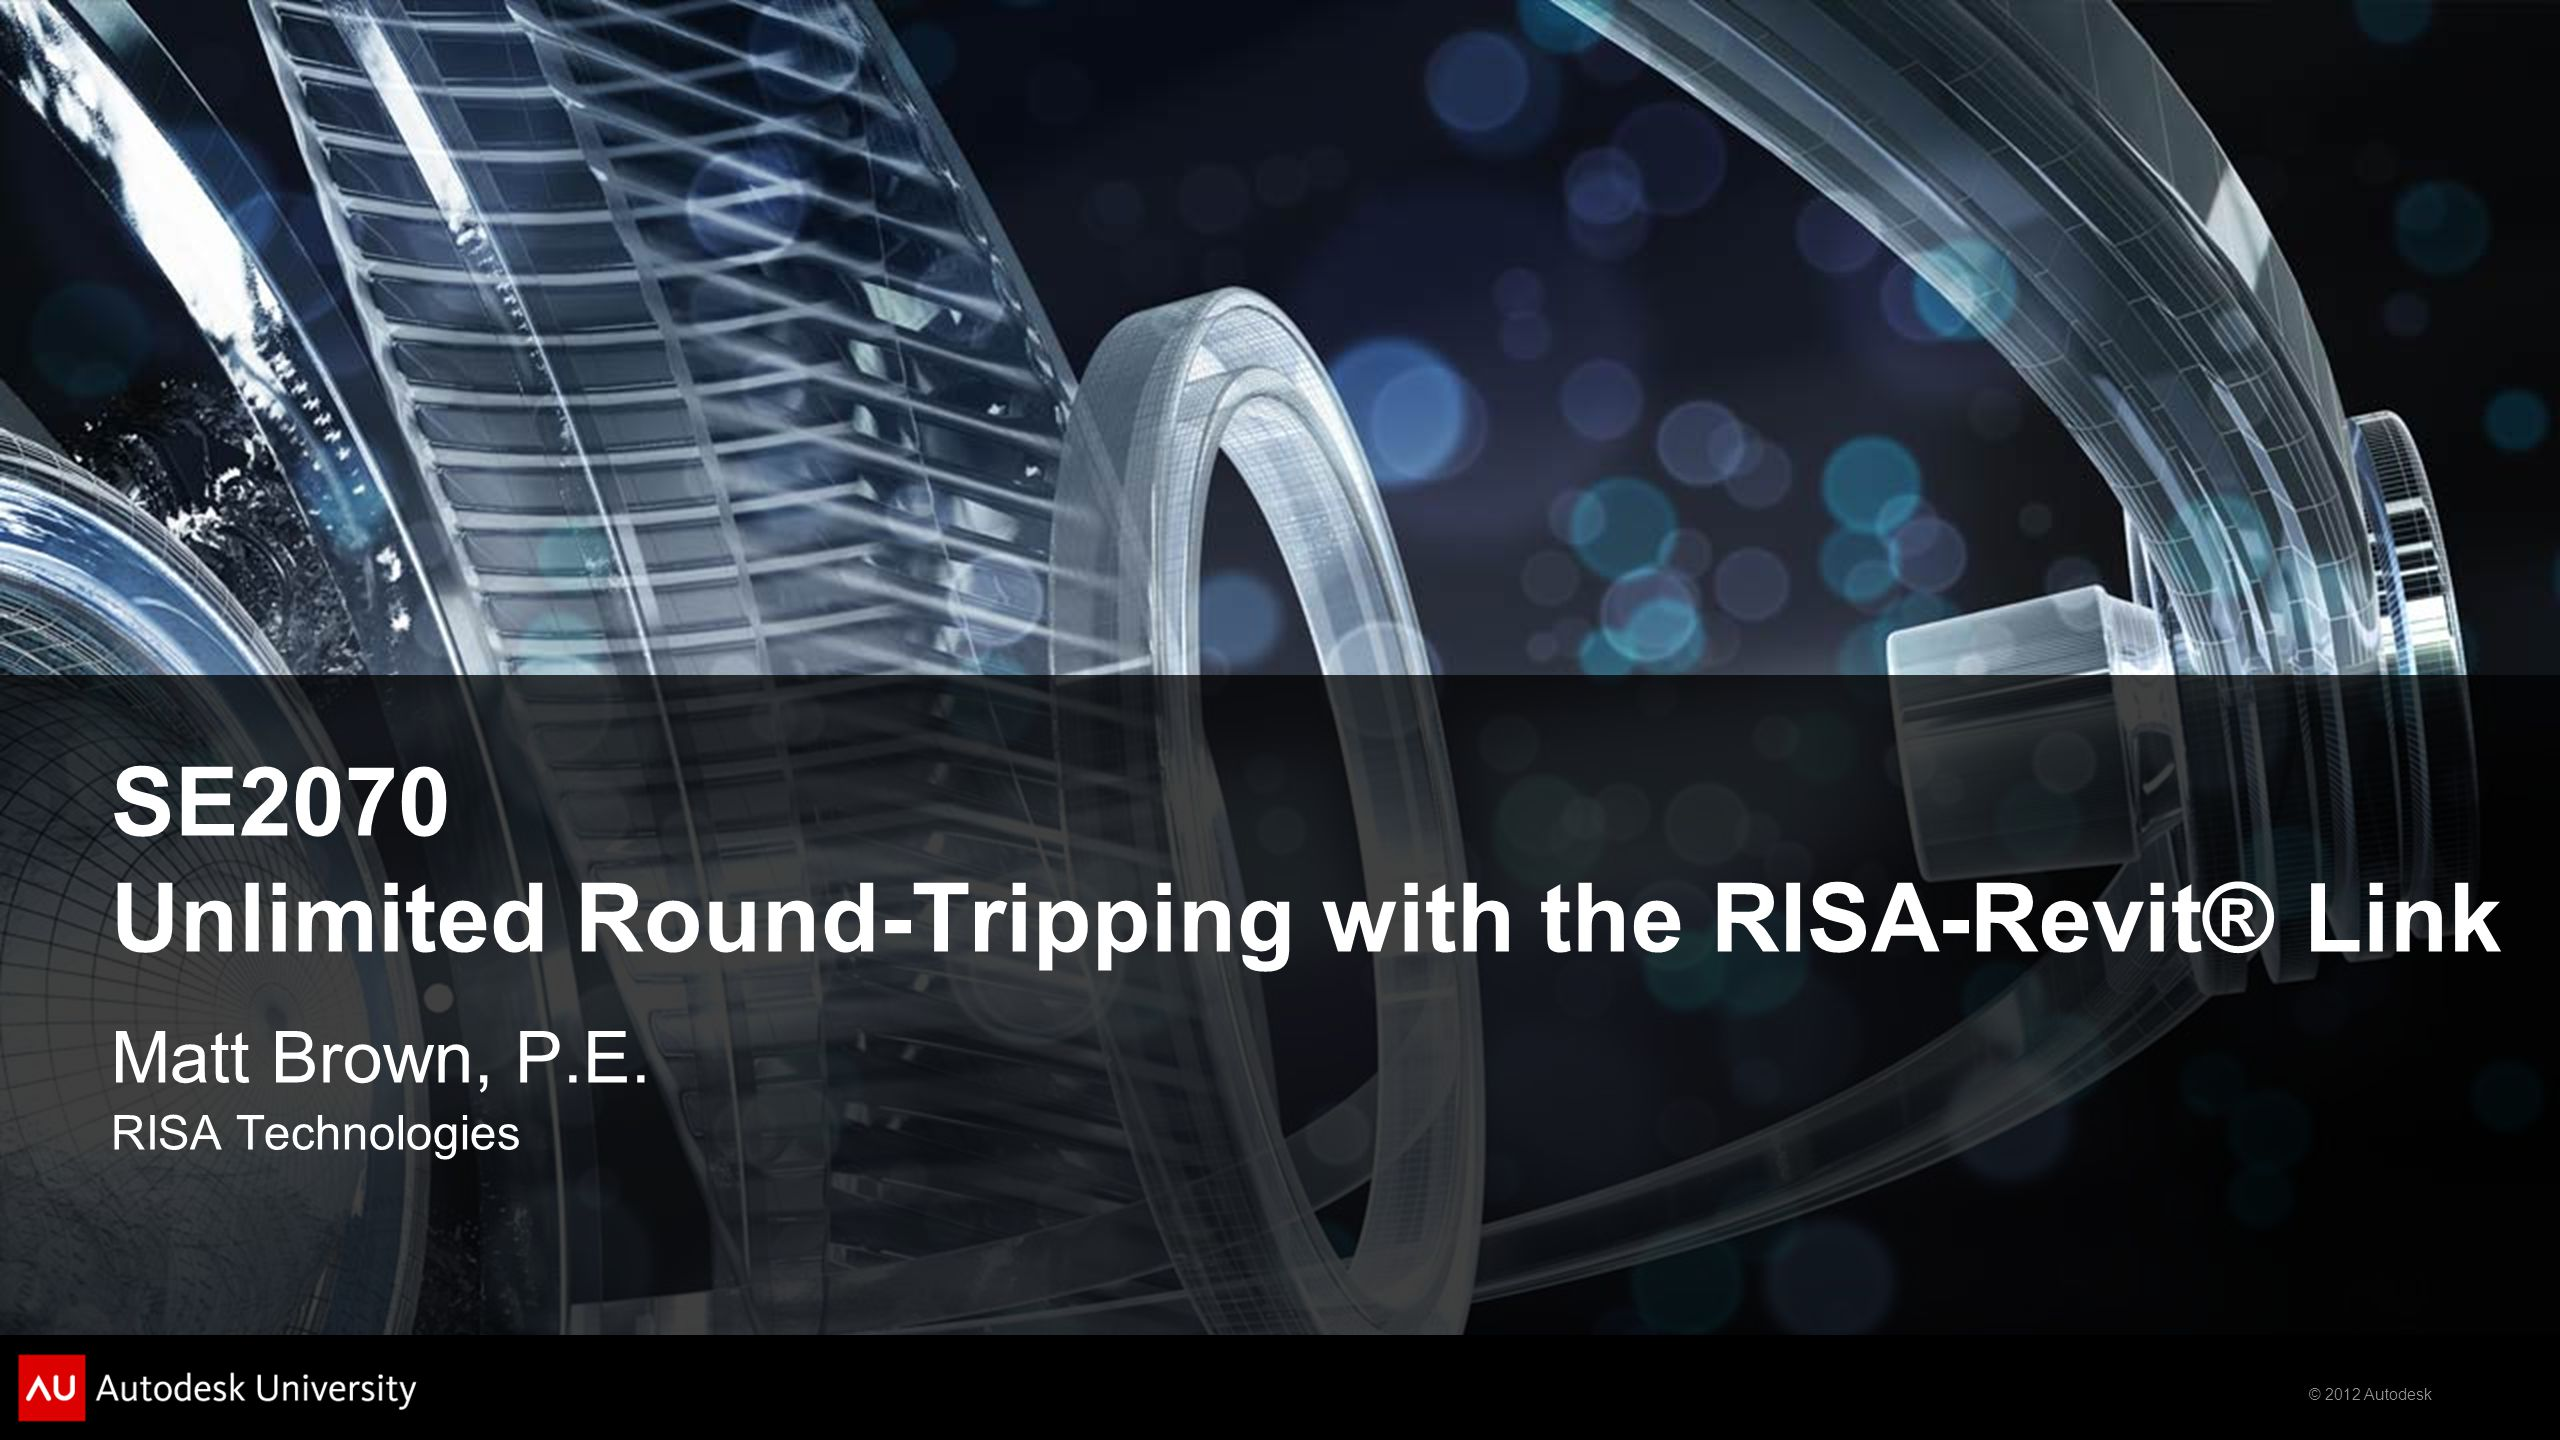 © 2012 Autodesk SE2070 Unlimited Round-Tripping with the RISA-Revit® Link Matt Brown, P.E.